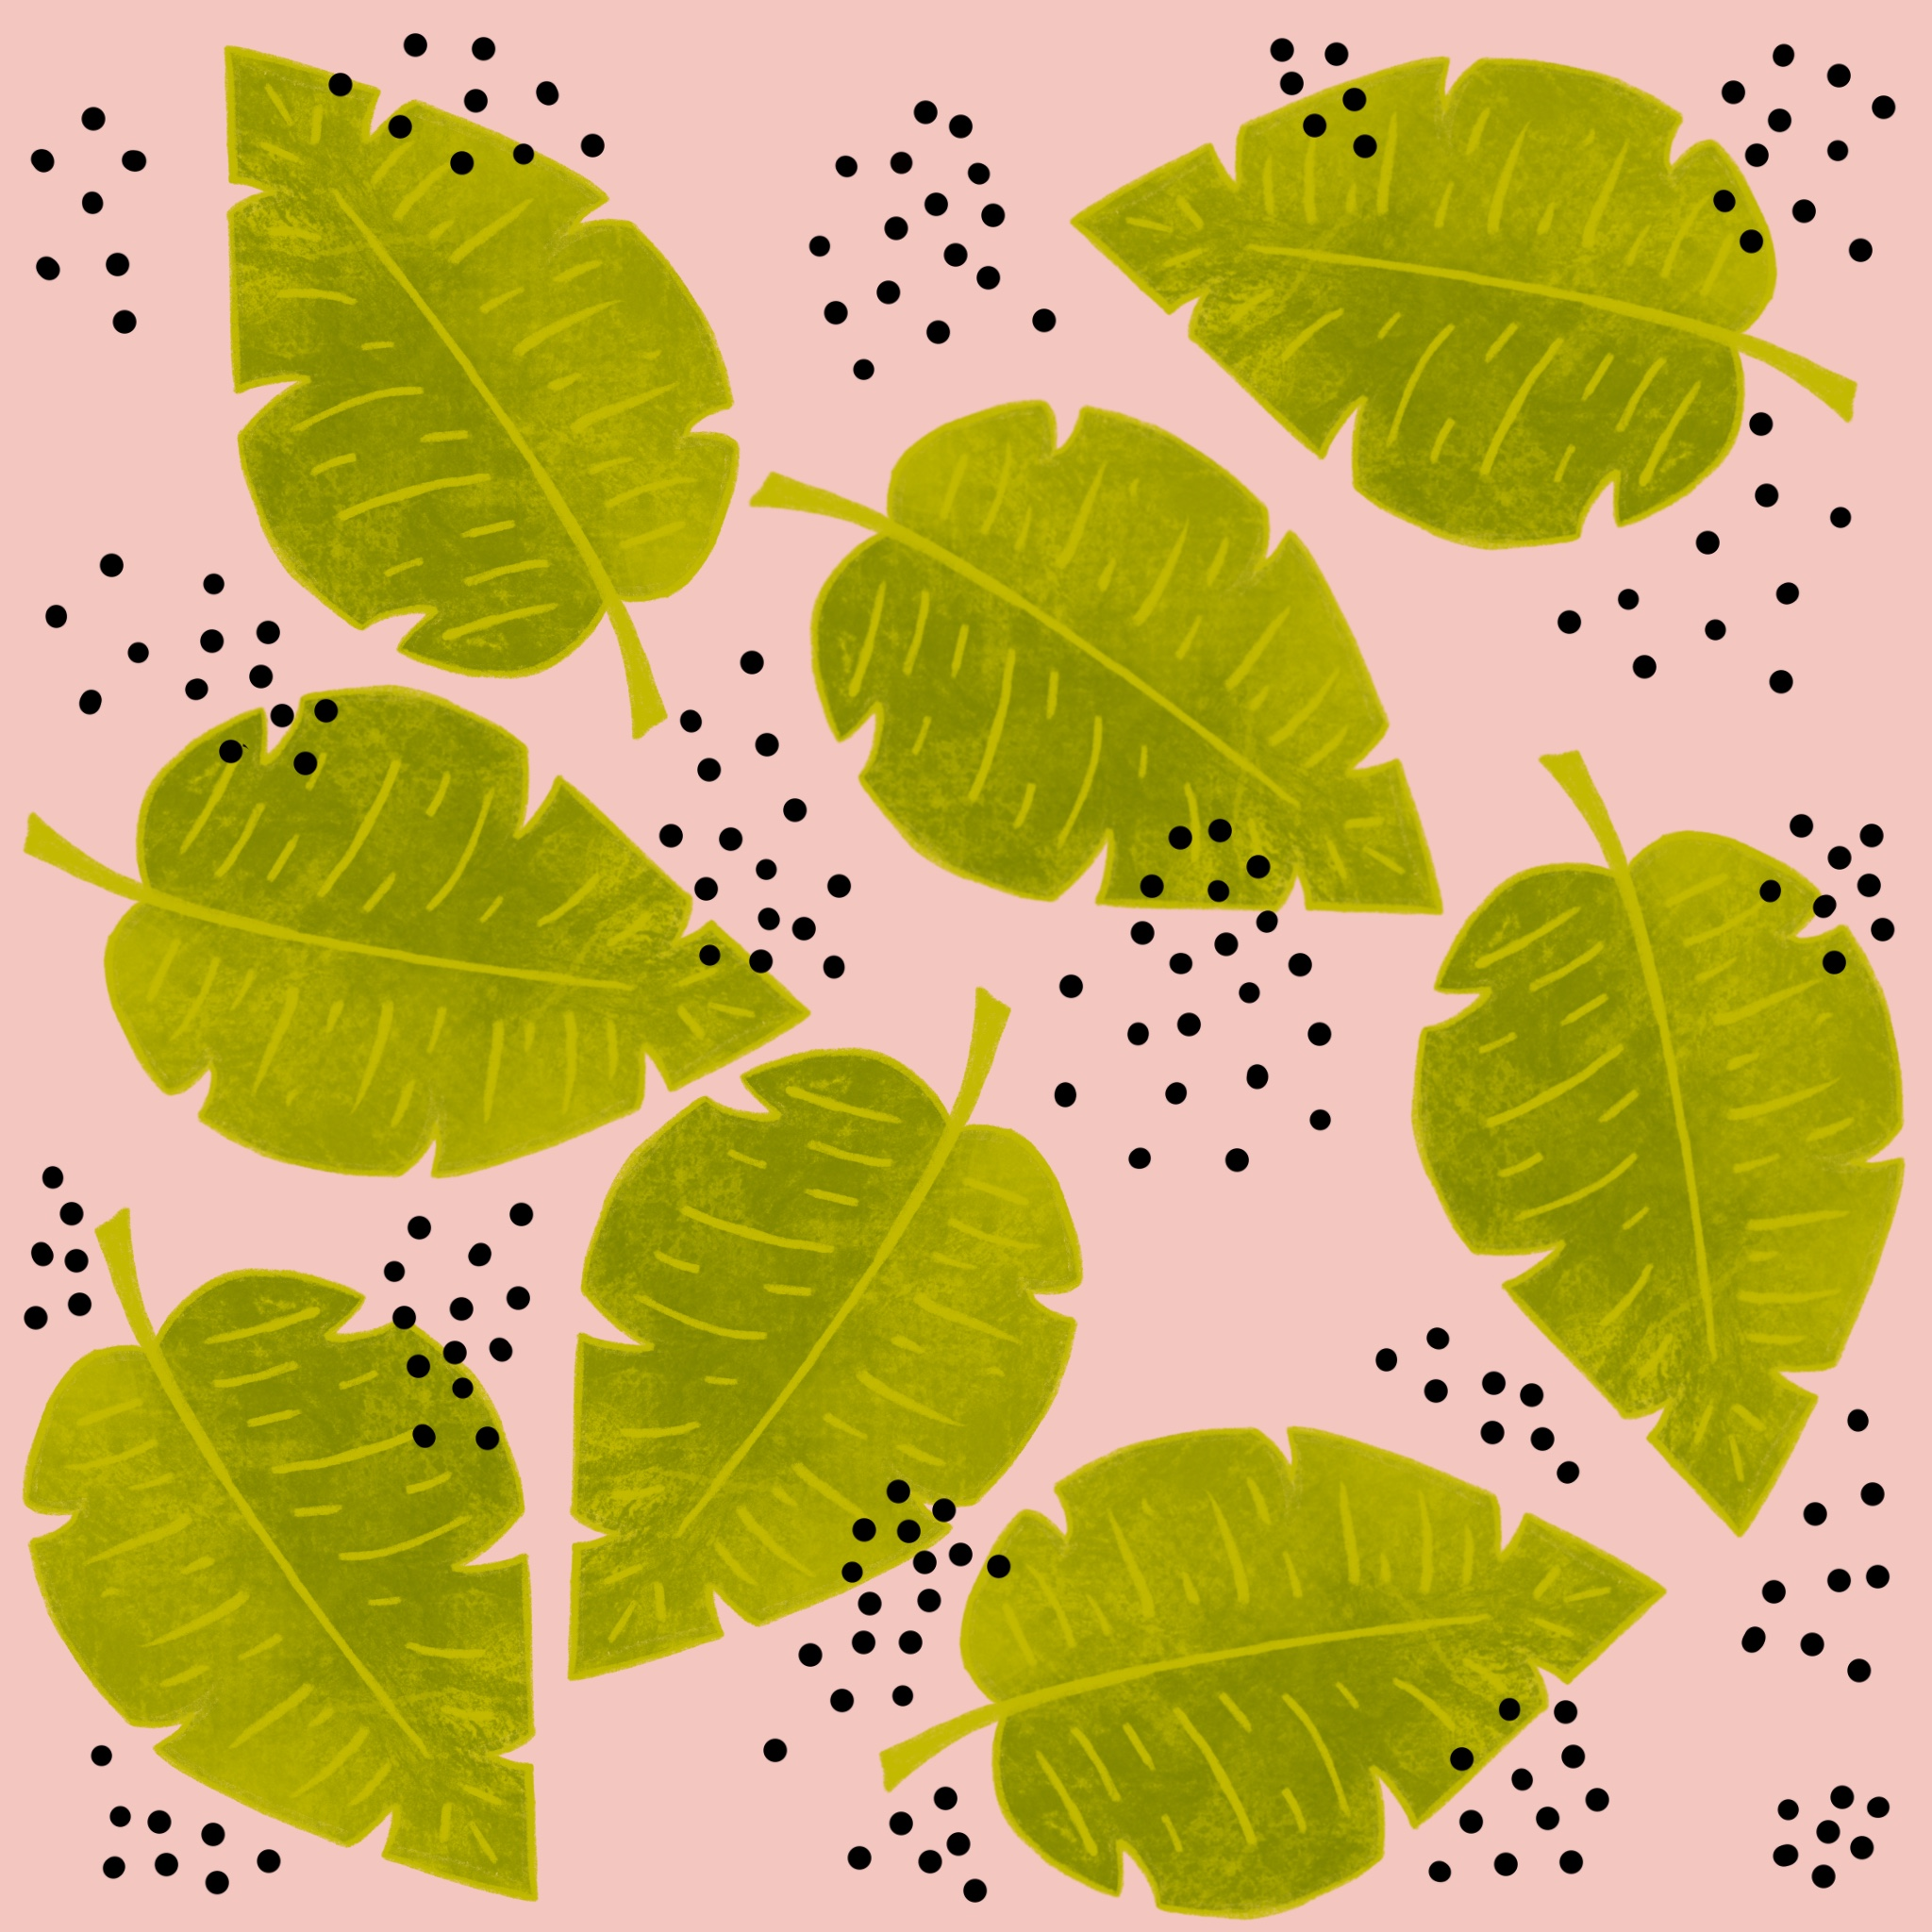 Illustrated Surface Pattern Design Palm Leaves Tropical